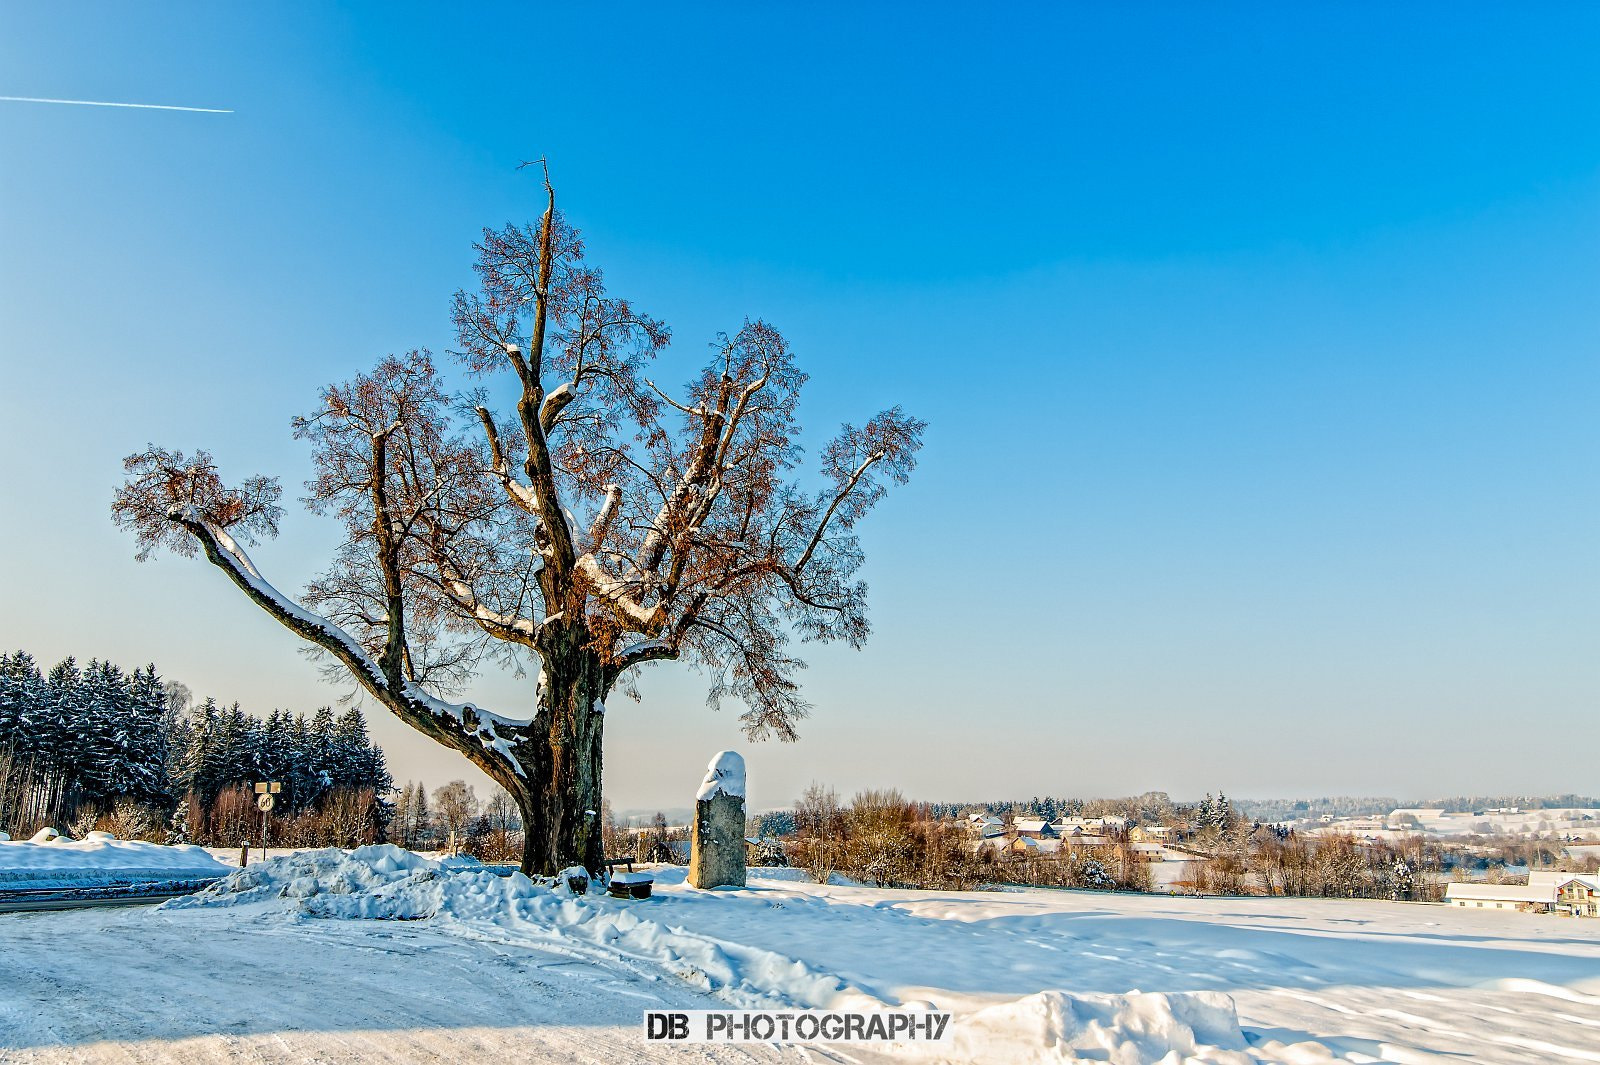 Photograph One of my favorite trees by Hans Weichselbaumer on 500px